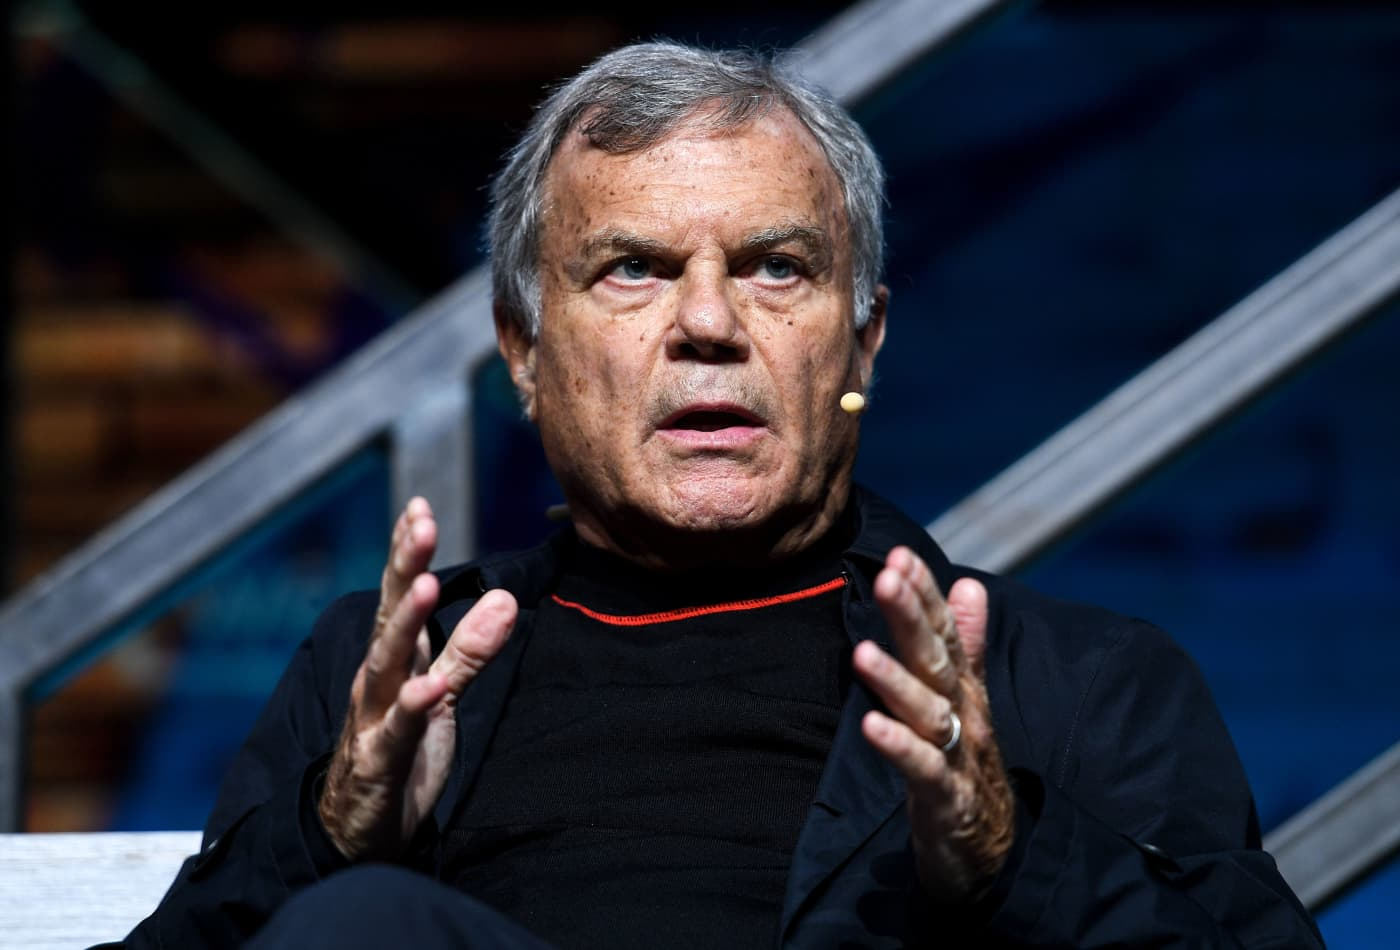 Ad exec Martin Sorrell says Facebook and Google shouldn't be broken up, calls boycotts pointless